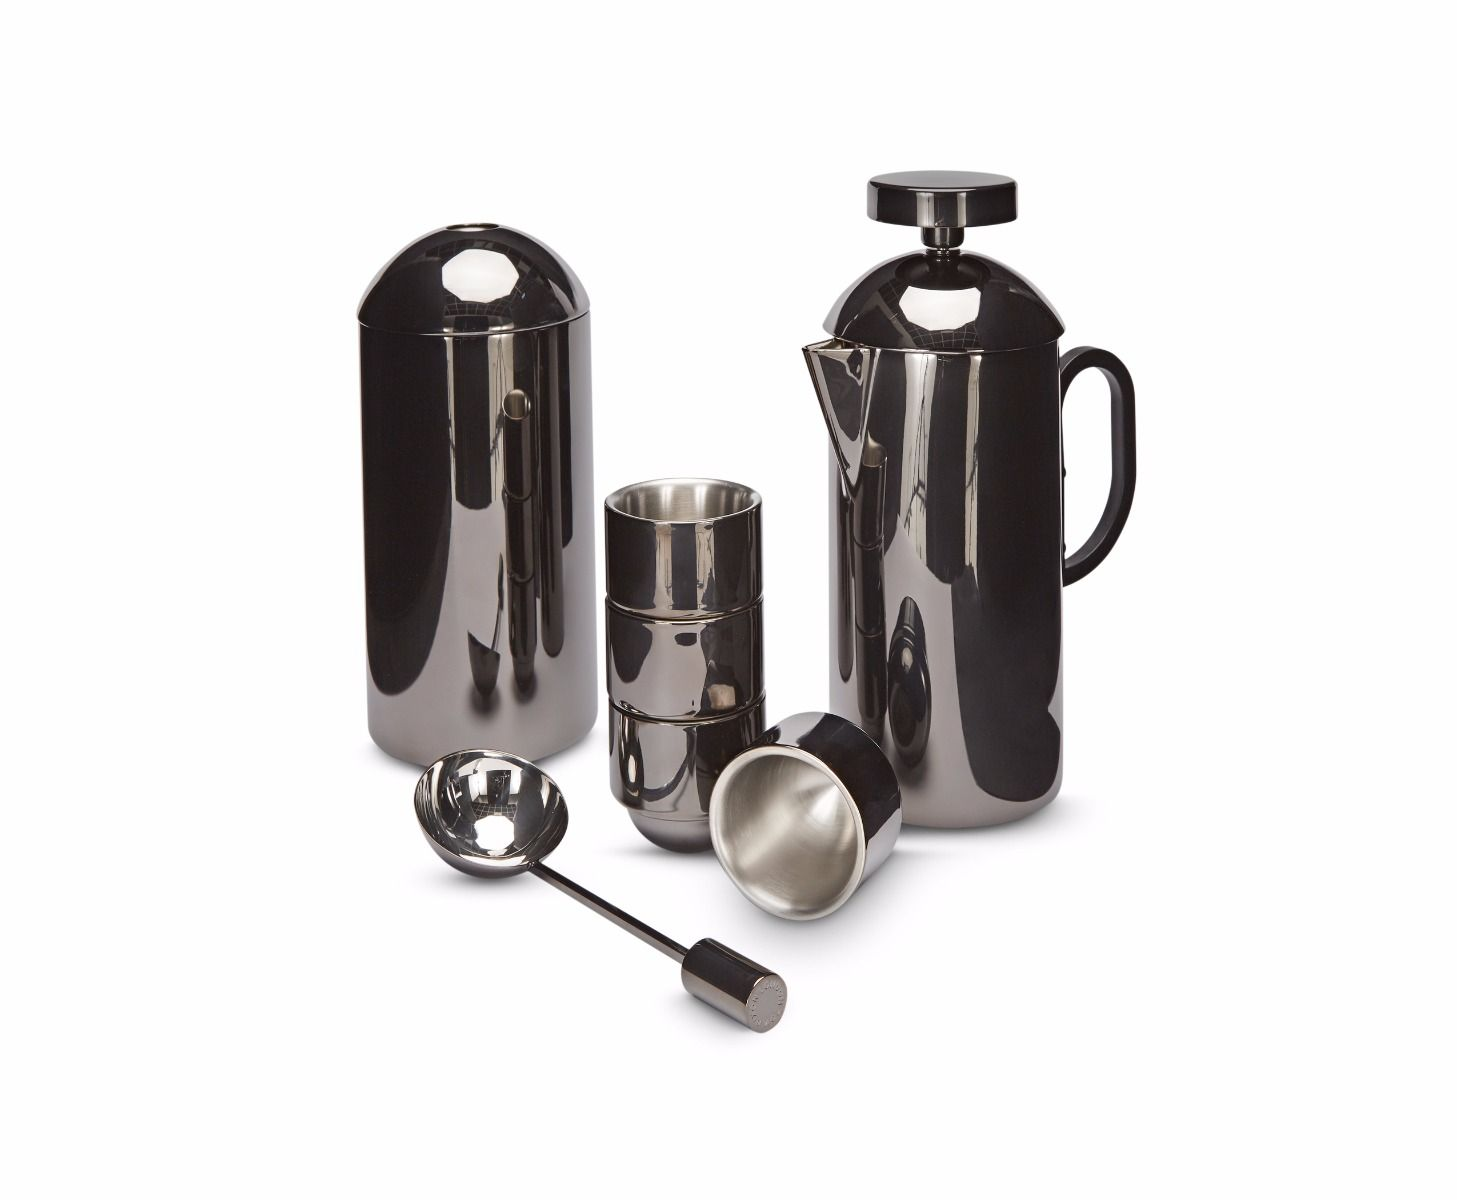 Brew Black Cafetiere Giftset